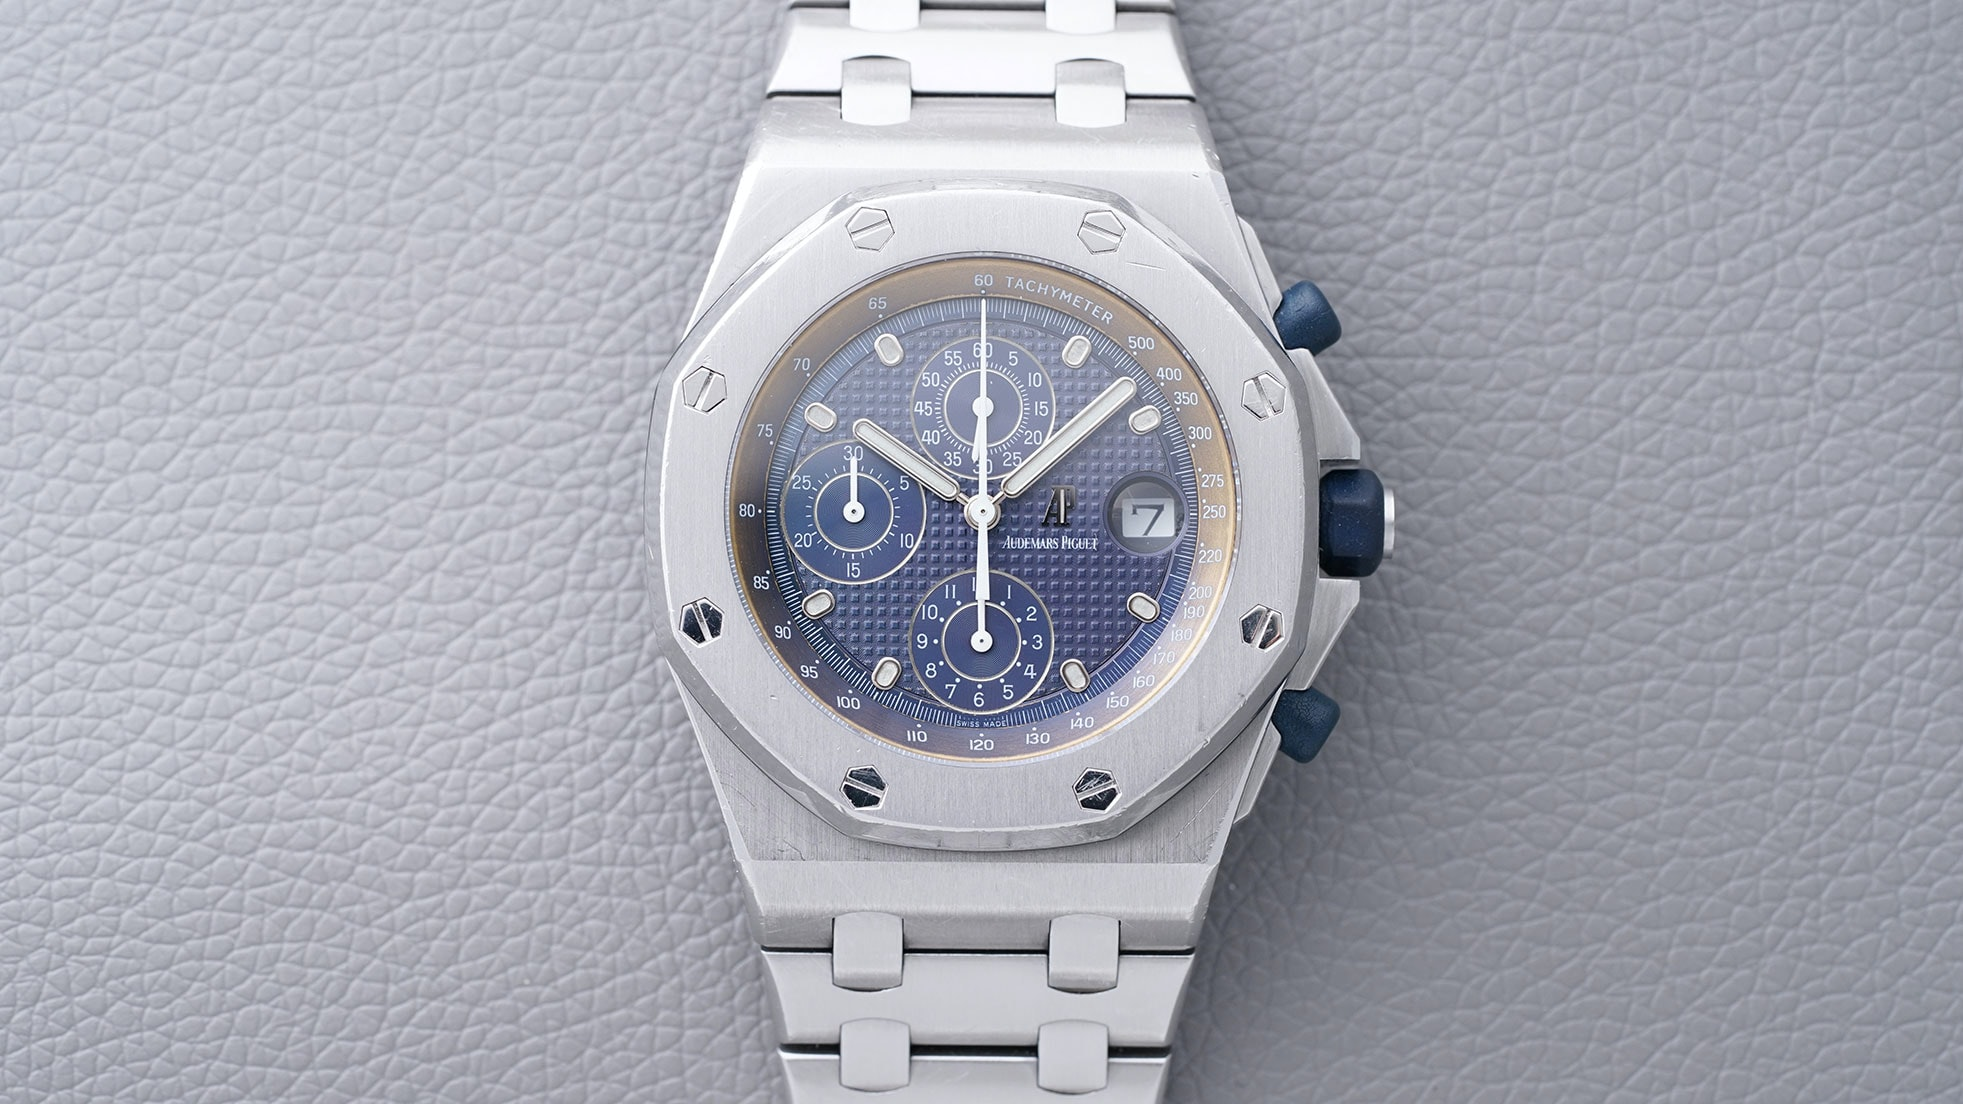 Auction Report: Phillips Is Selling An Original Audemars Piguet Royal Oak Offshore Owned By The Man Who Designed It